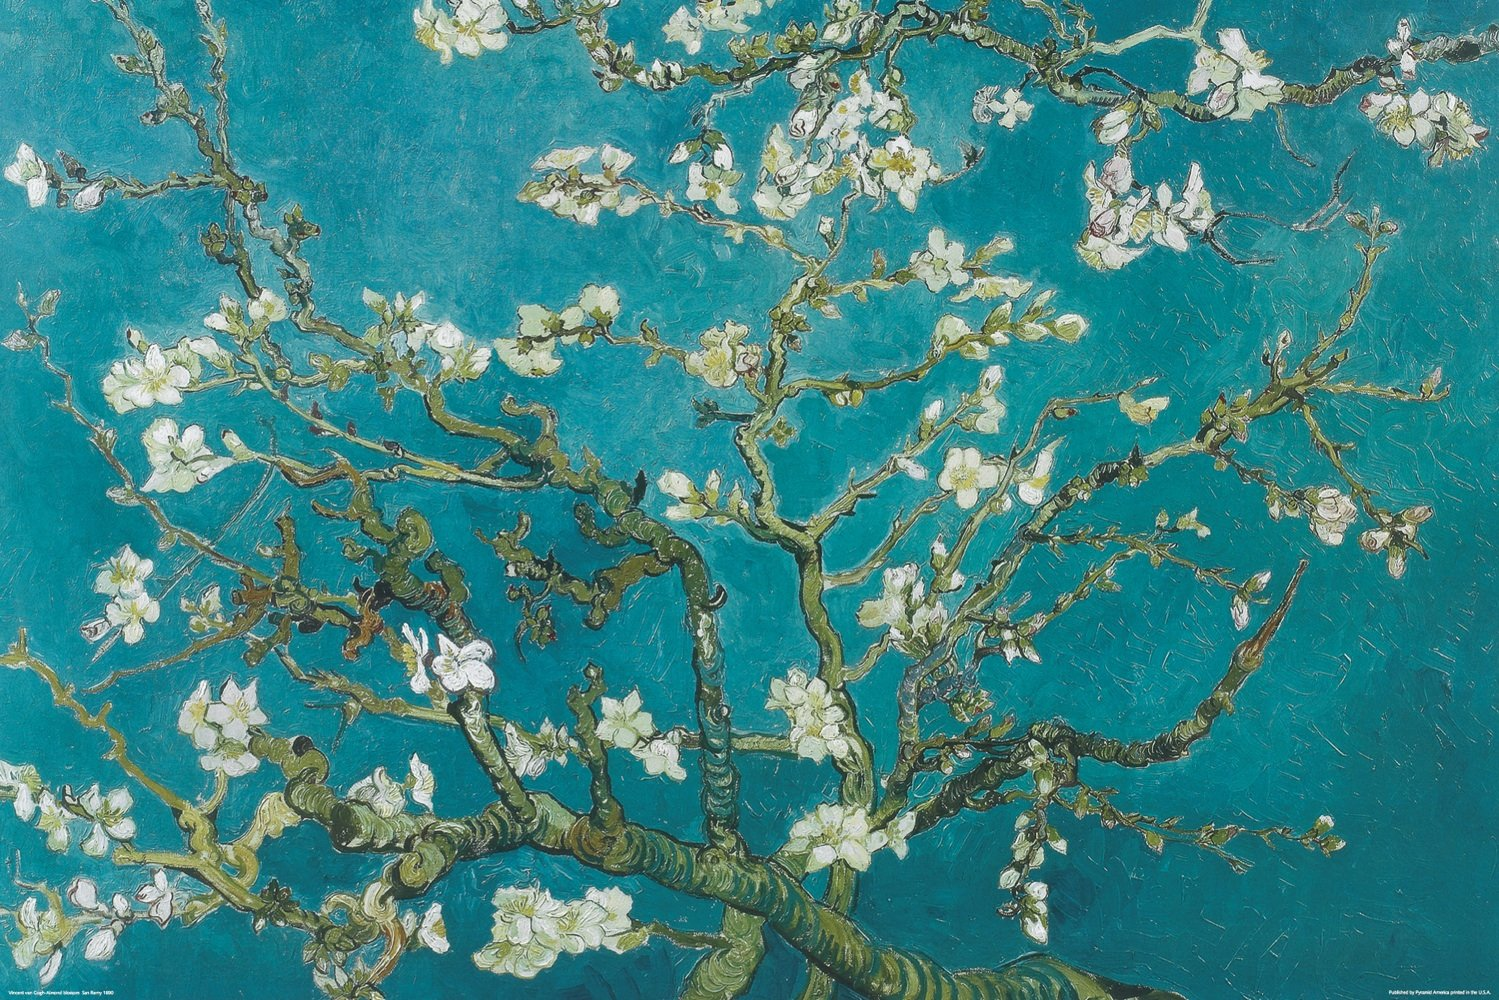 Amazon.com: Pyramid PAS0014 Almond Blossoms Decorative Poster ... for Almond Blossom Van Gogh Poster  575cpg